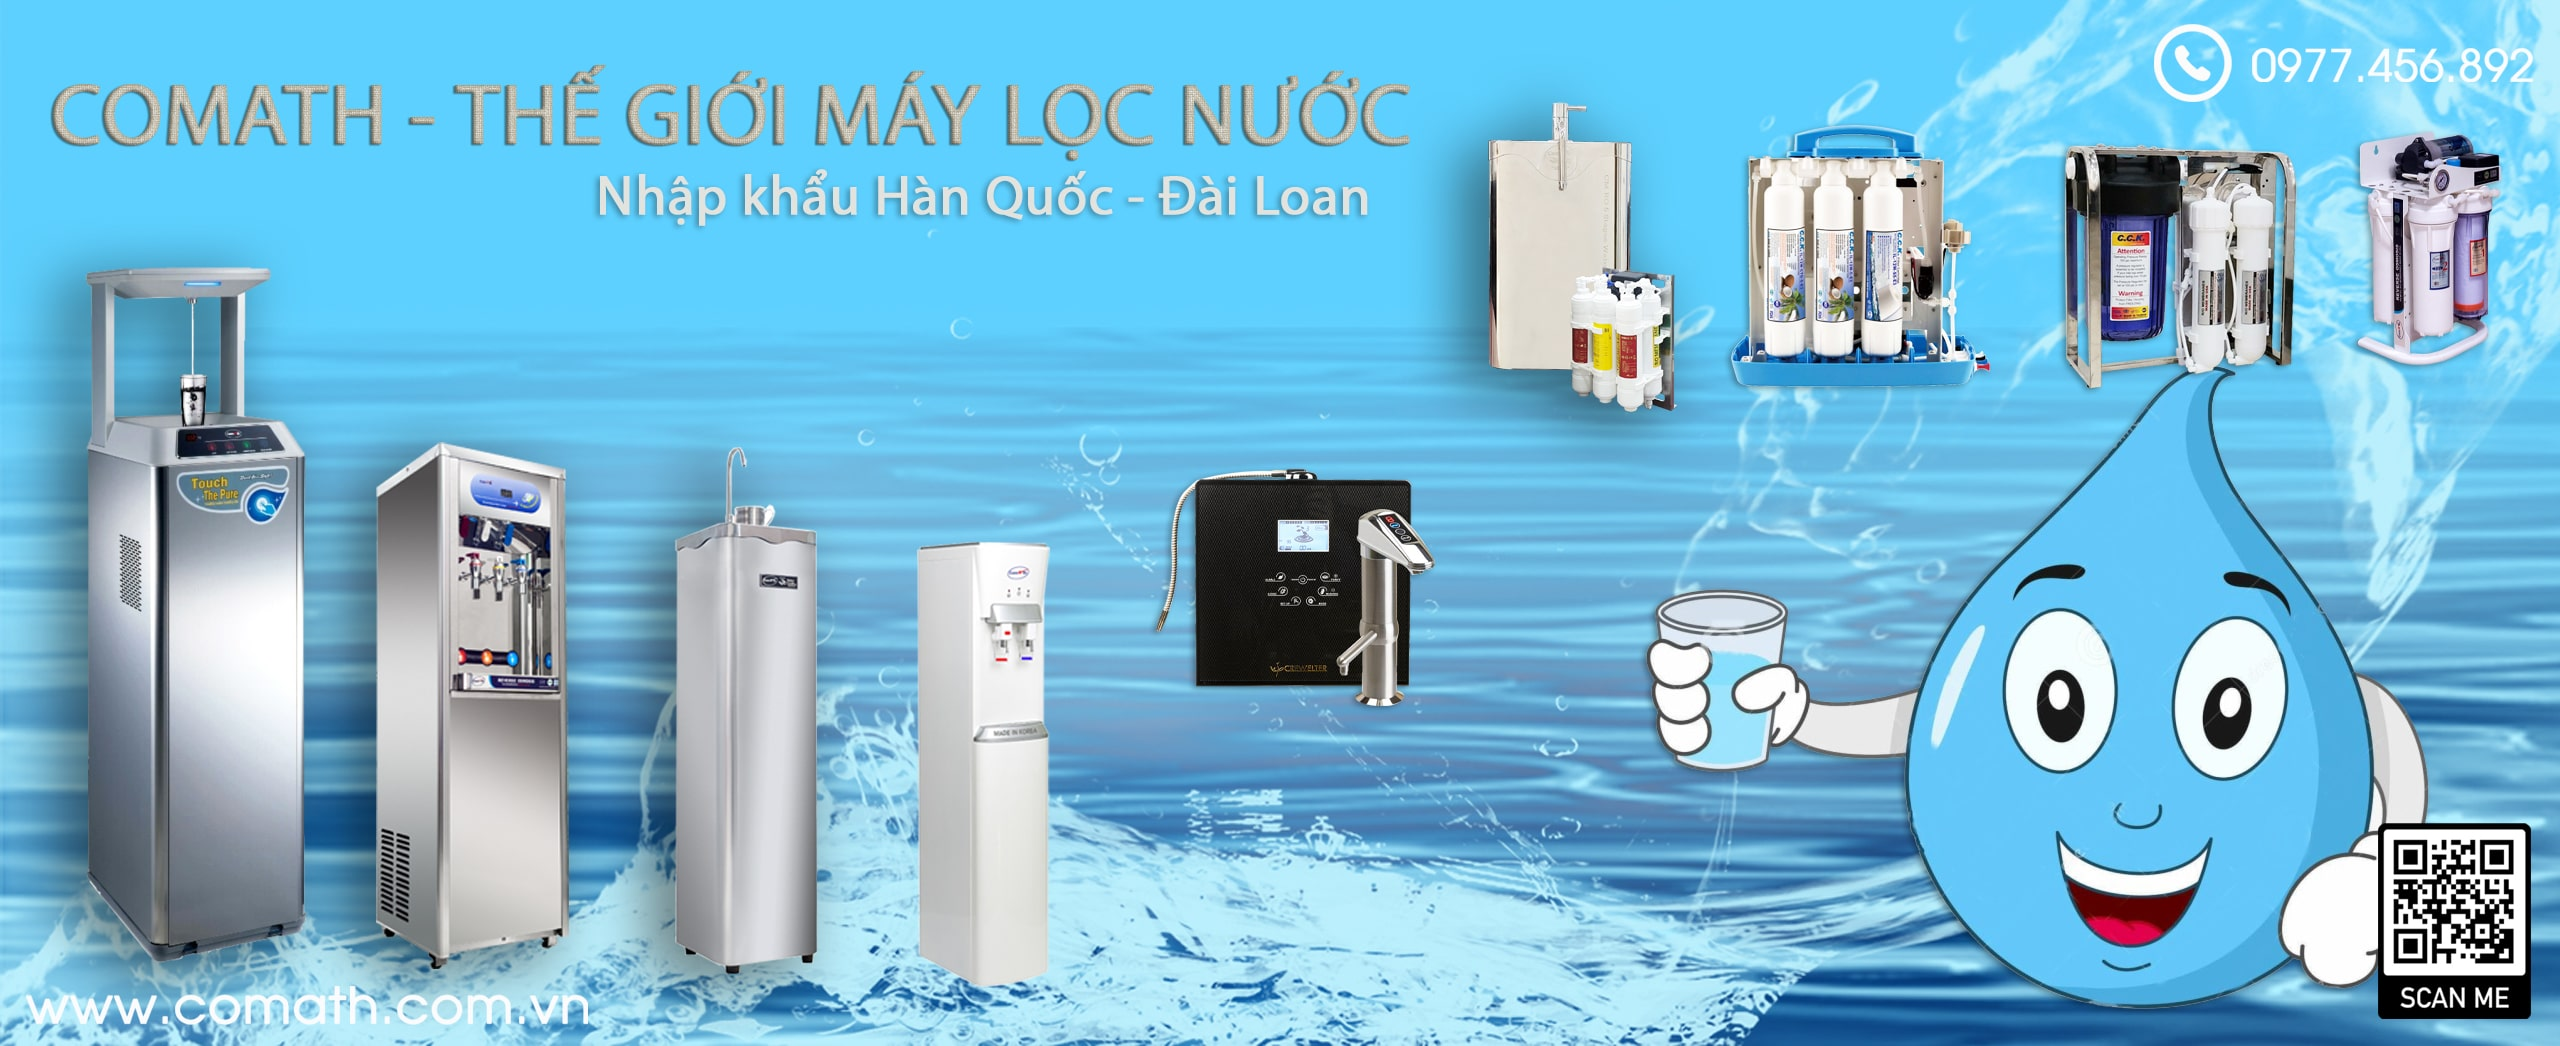 may loc nuoc banner